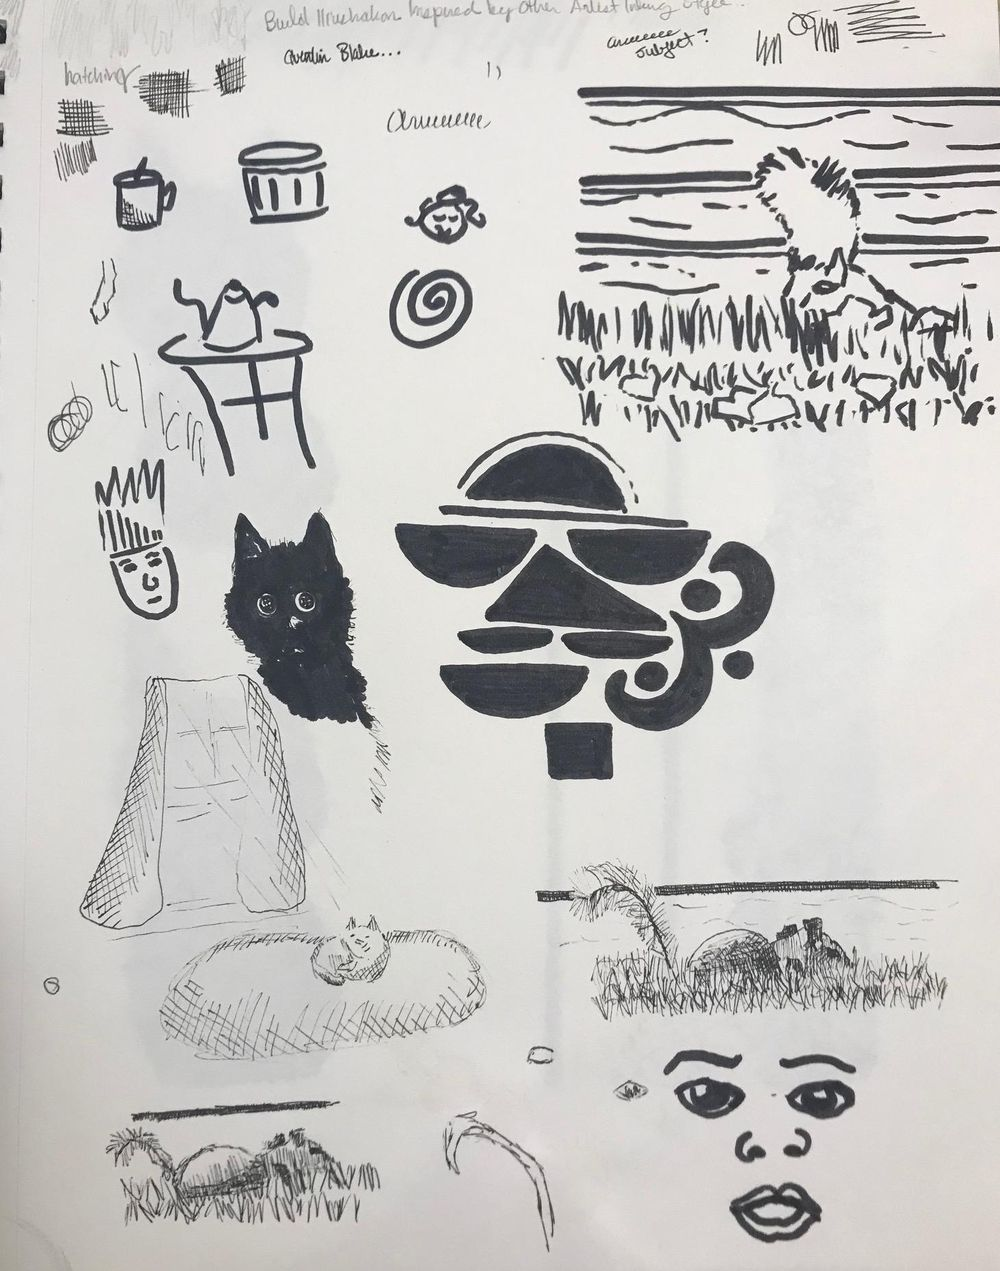 Practicing with ink and lines - image 4 - student project